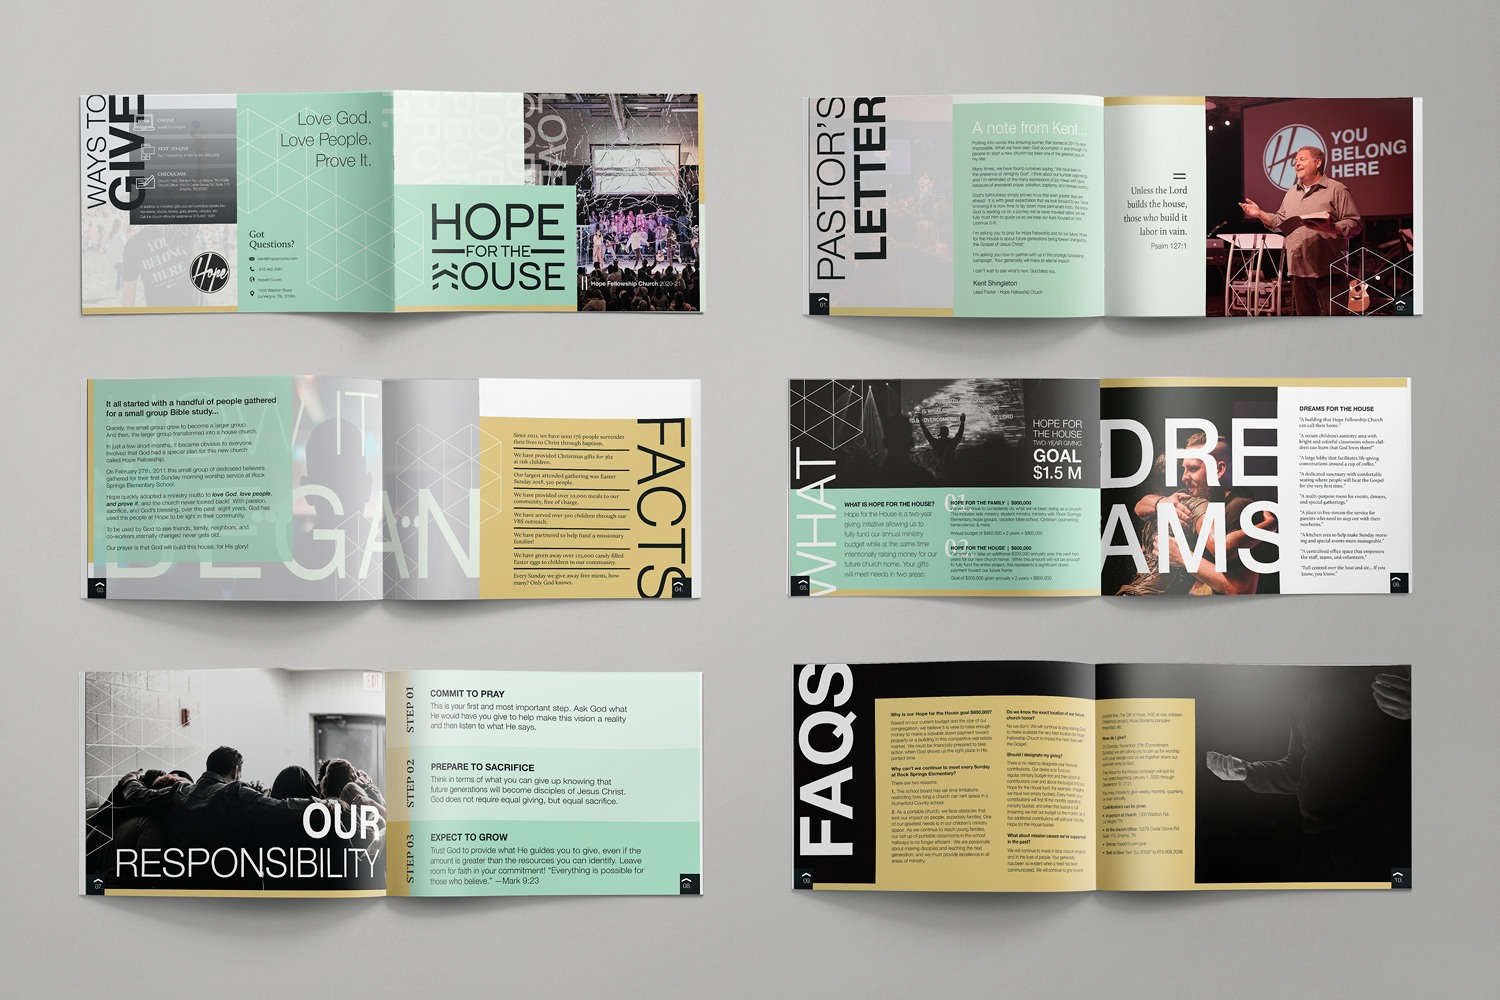 Non-denominational church capital stewardship case statement brochure, capital campaign consulting for church campaigns by Abstract Union